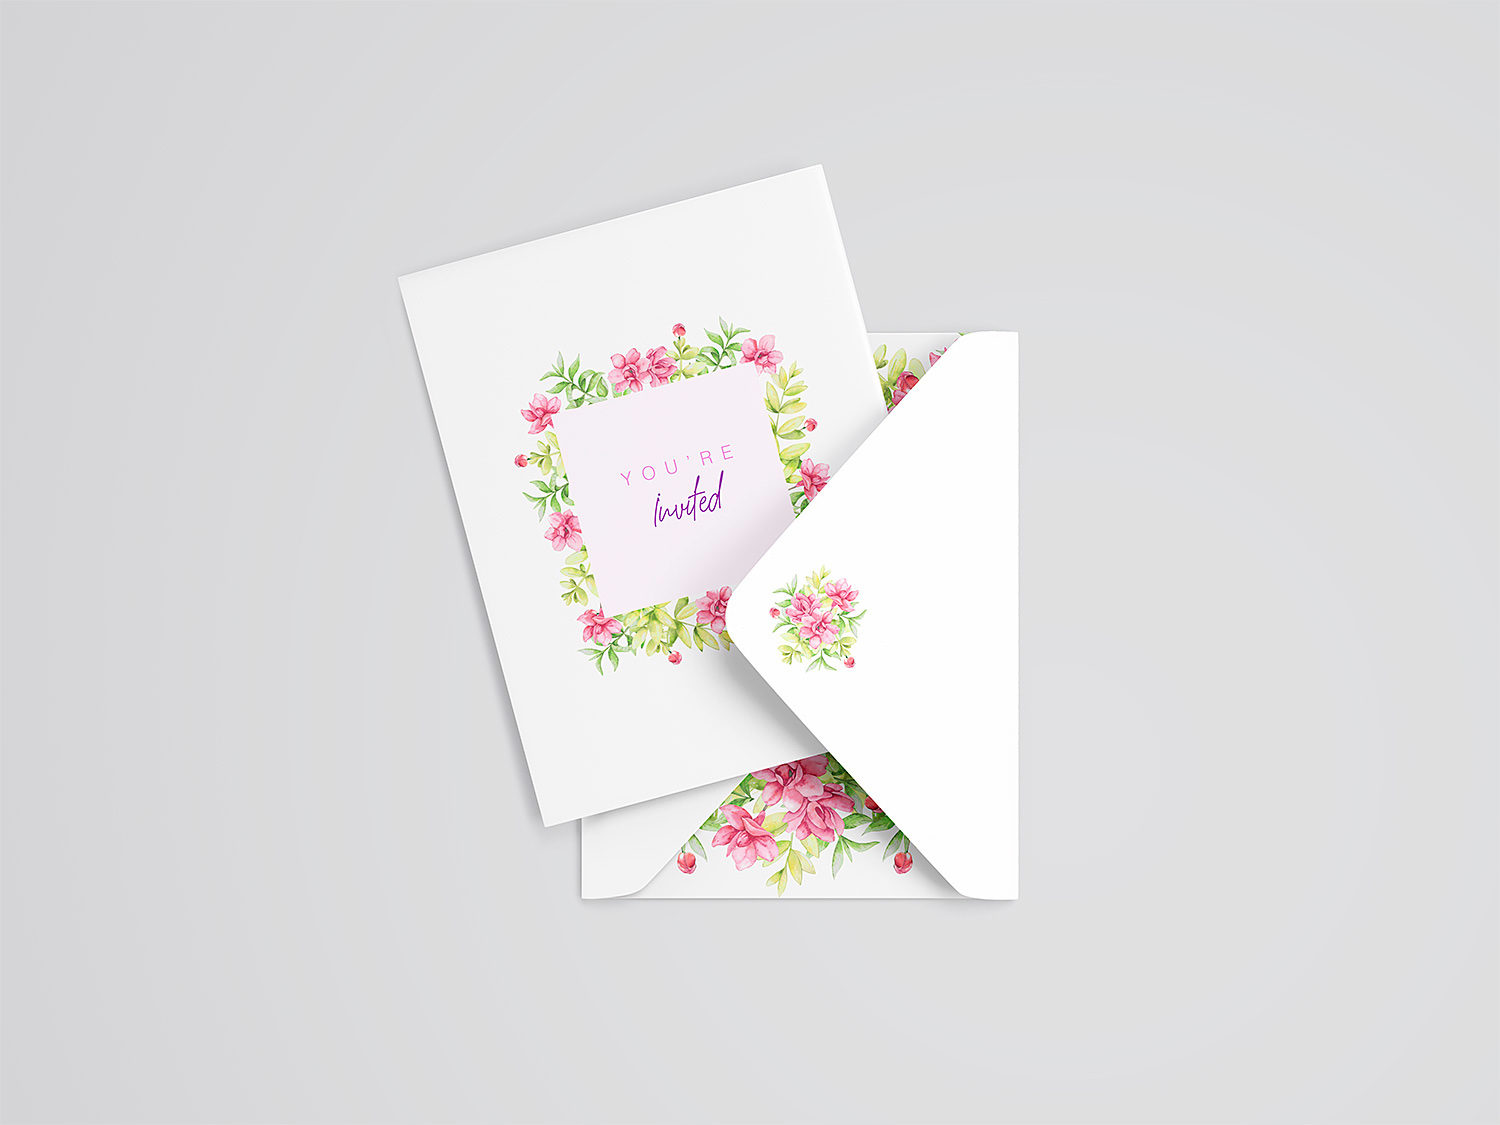 Wedding Card and Envelope Mockup